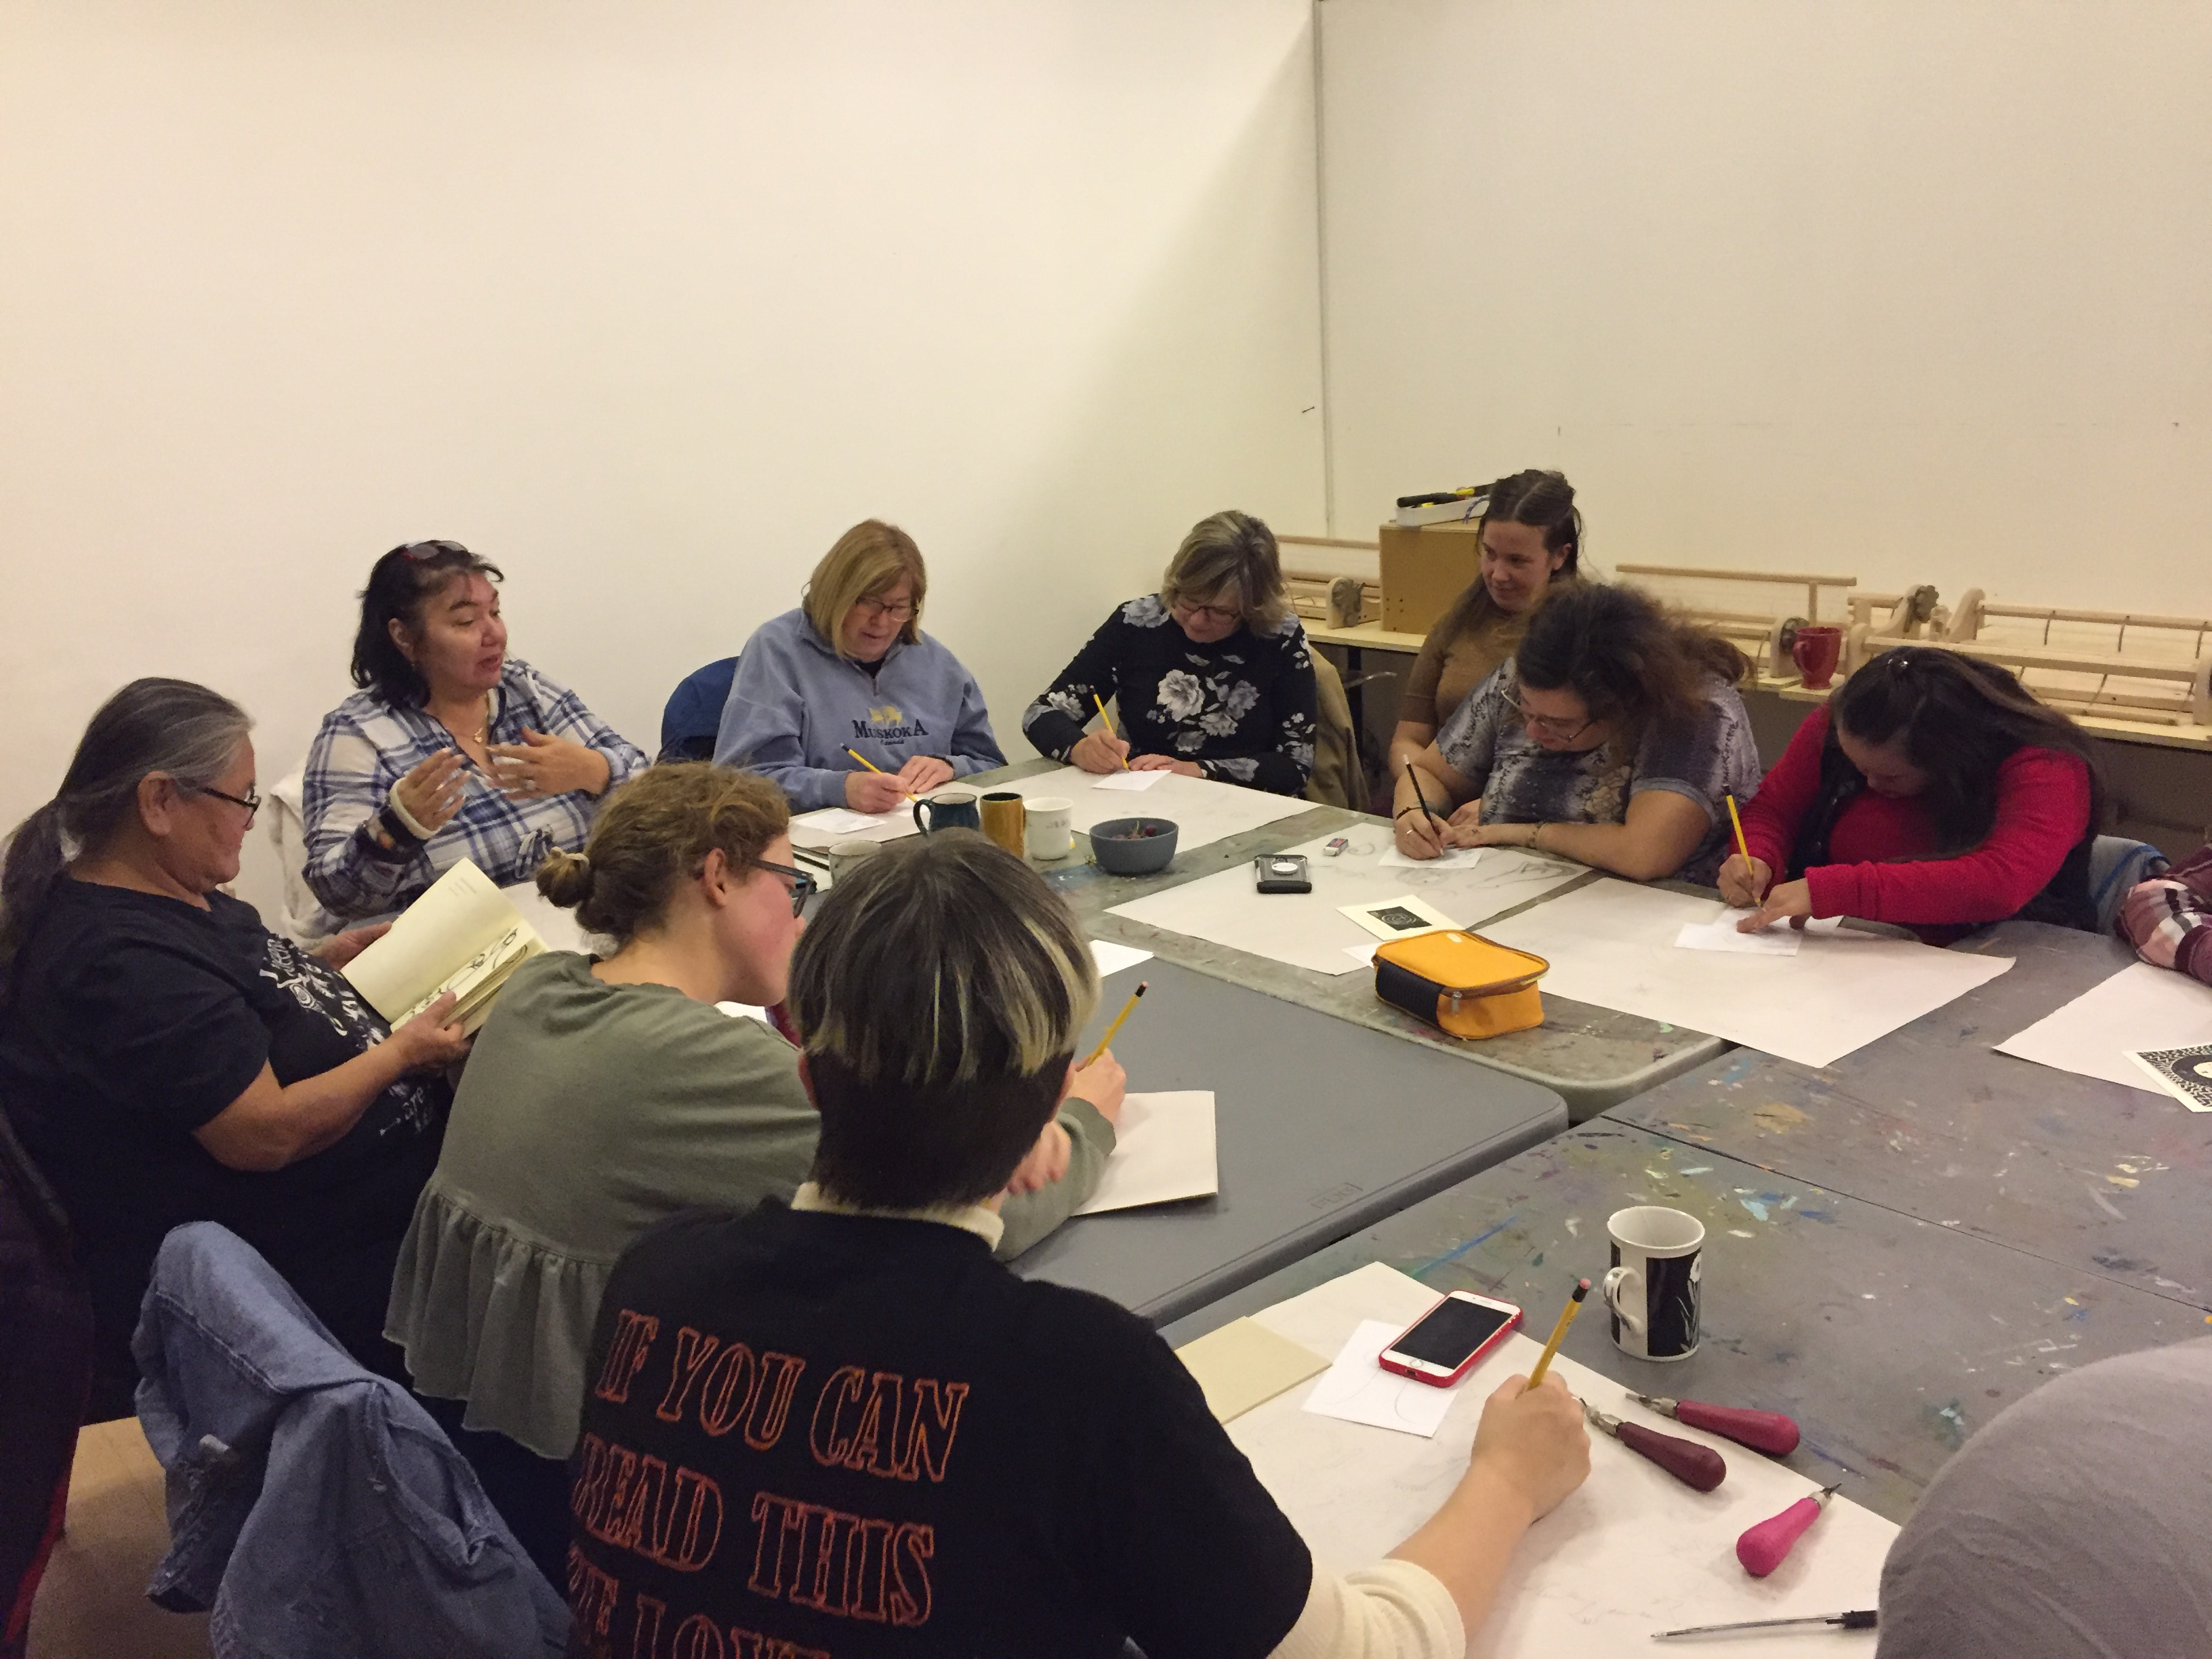 Feast Bag workshop participants sharing stories and drawing